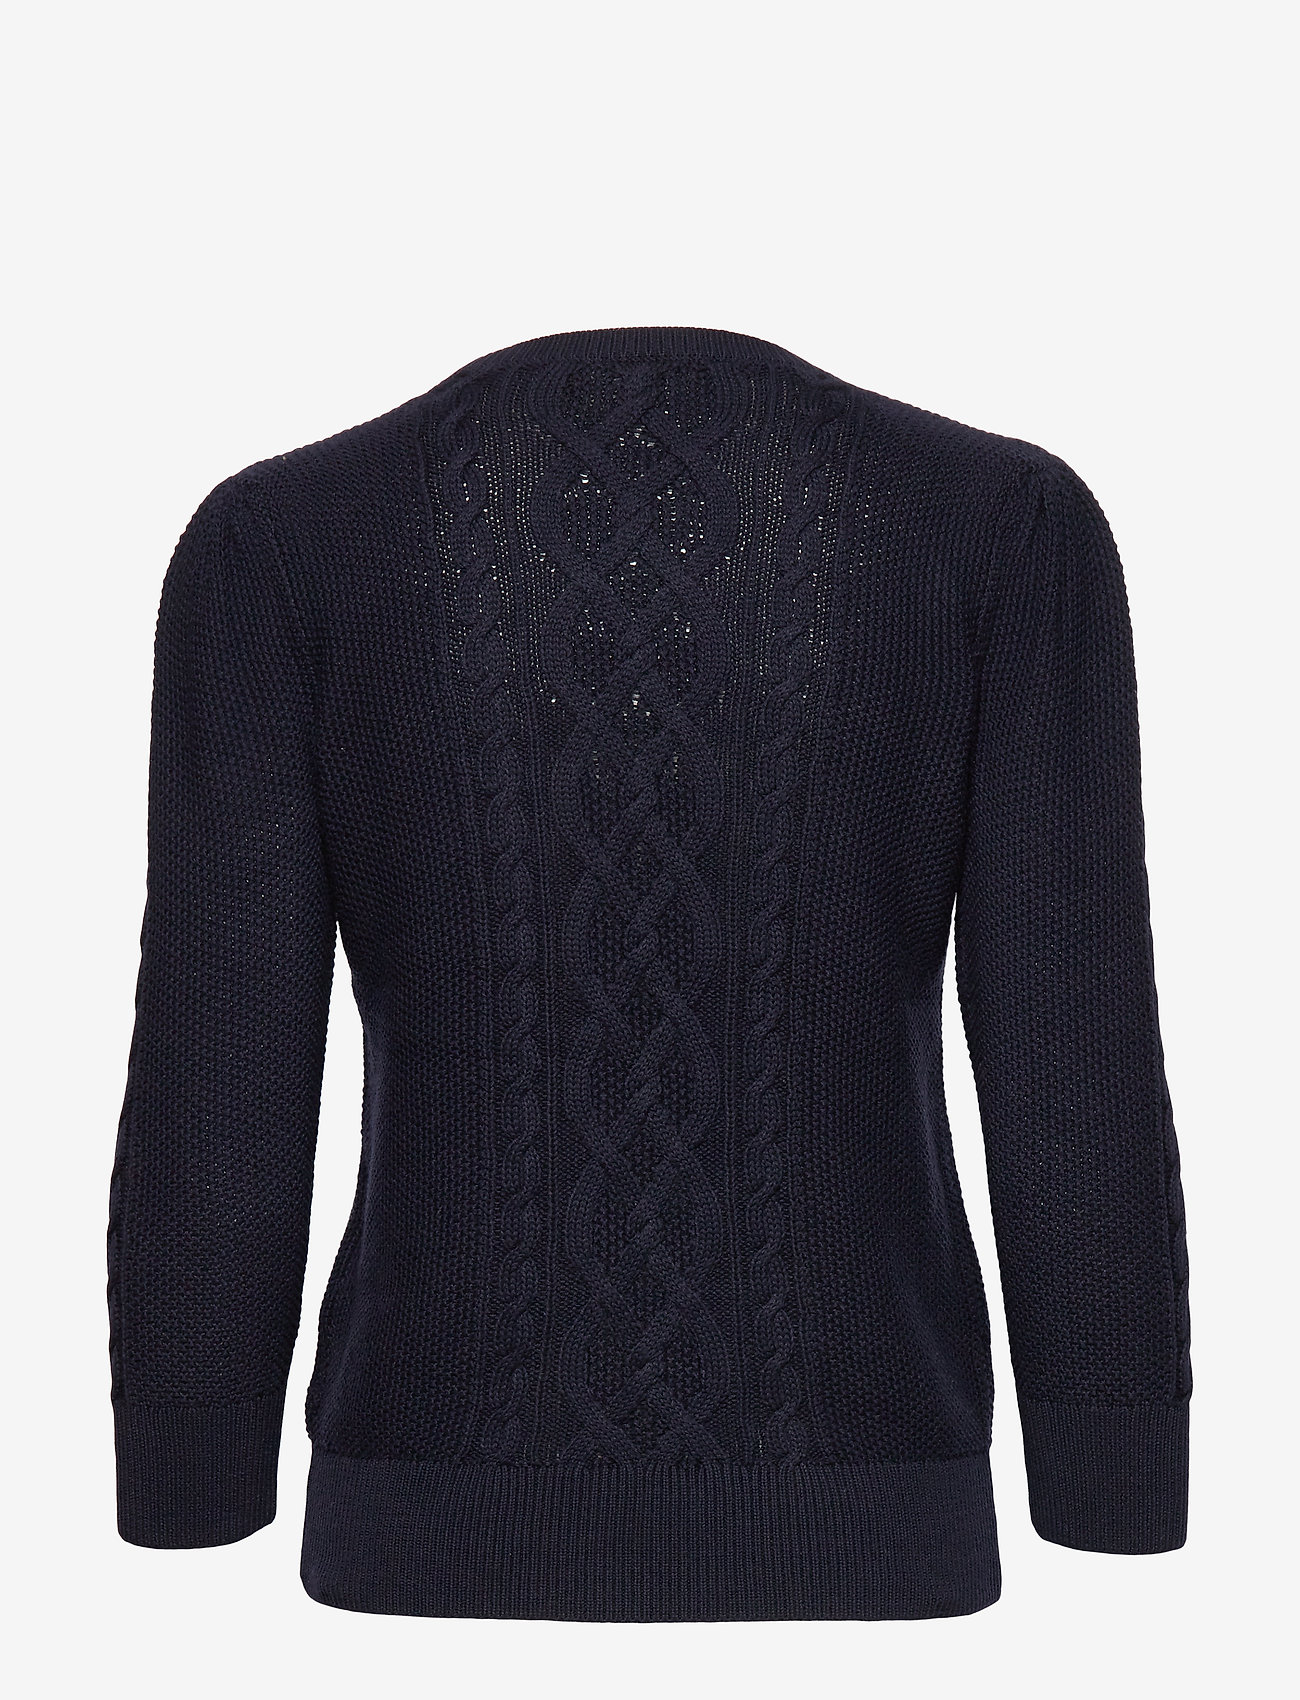 Lauren Ralph Lauren Puff-Sleeve Cable Sweater - Strikkevarer LAUREN NAVY - Dameklær Spesialtilbud